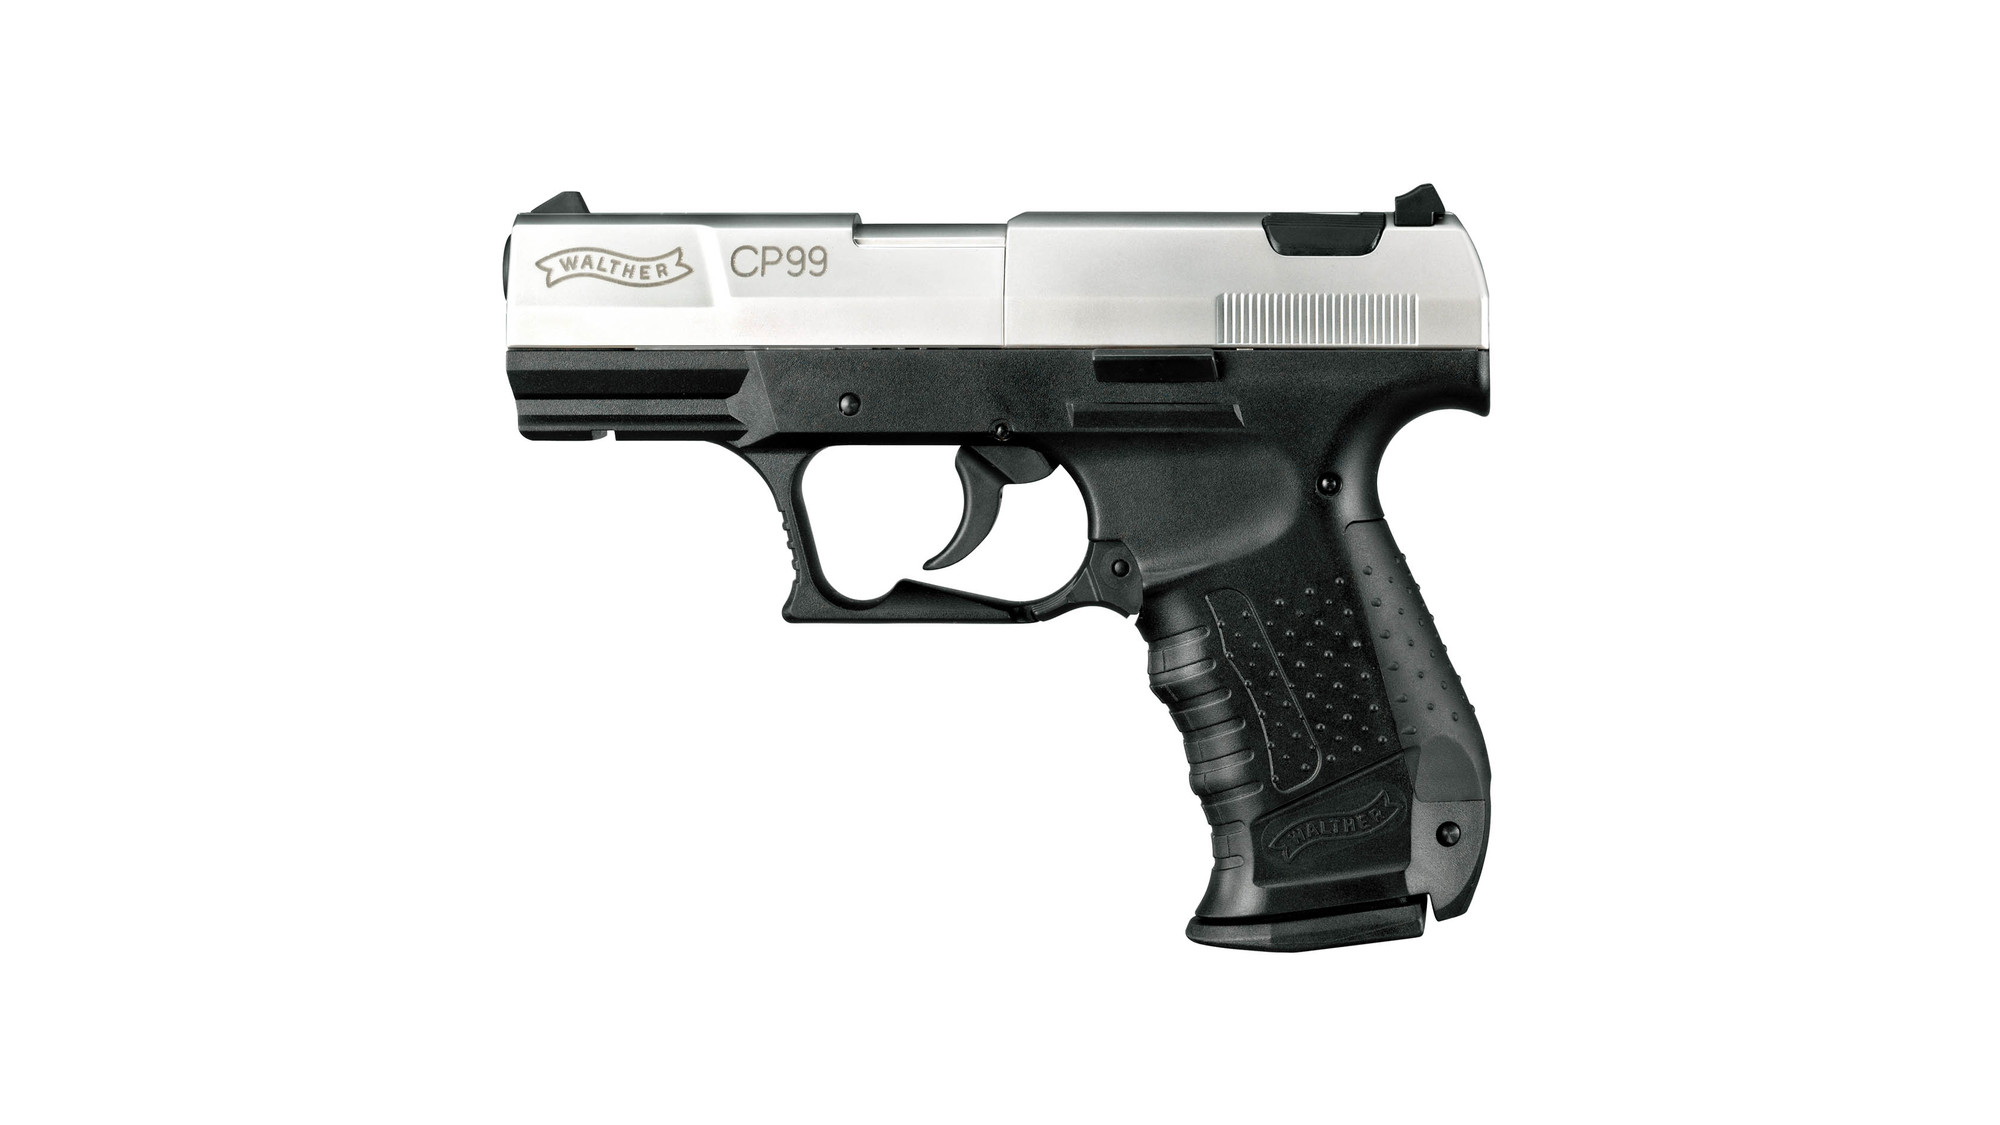 walther cp99 bicolour co2 air pistol the hunting edge hunting rh thehuntingedge co uk Walther Nighthawk Manual Walther CP99 Compact CO2 Gun